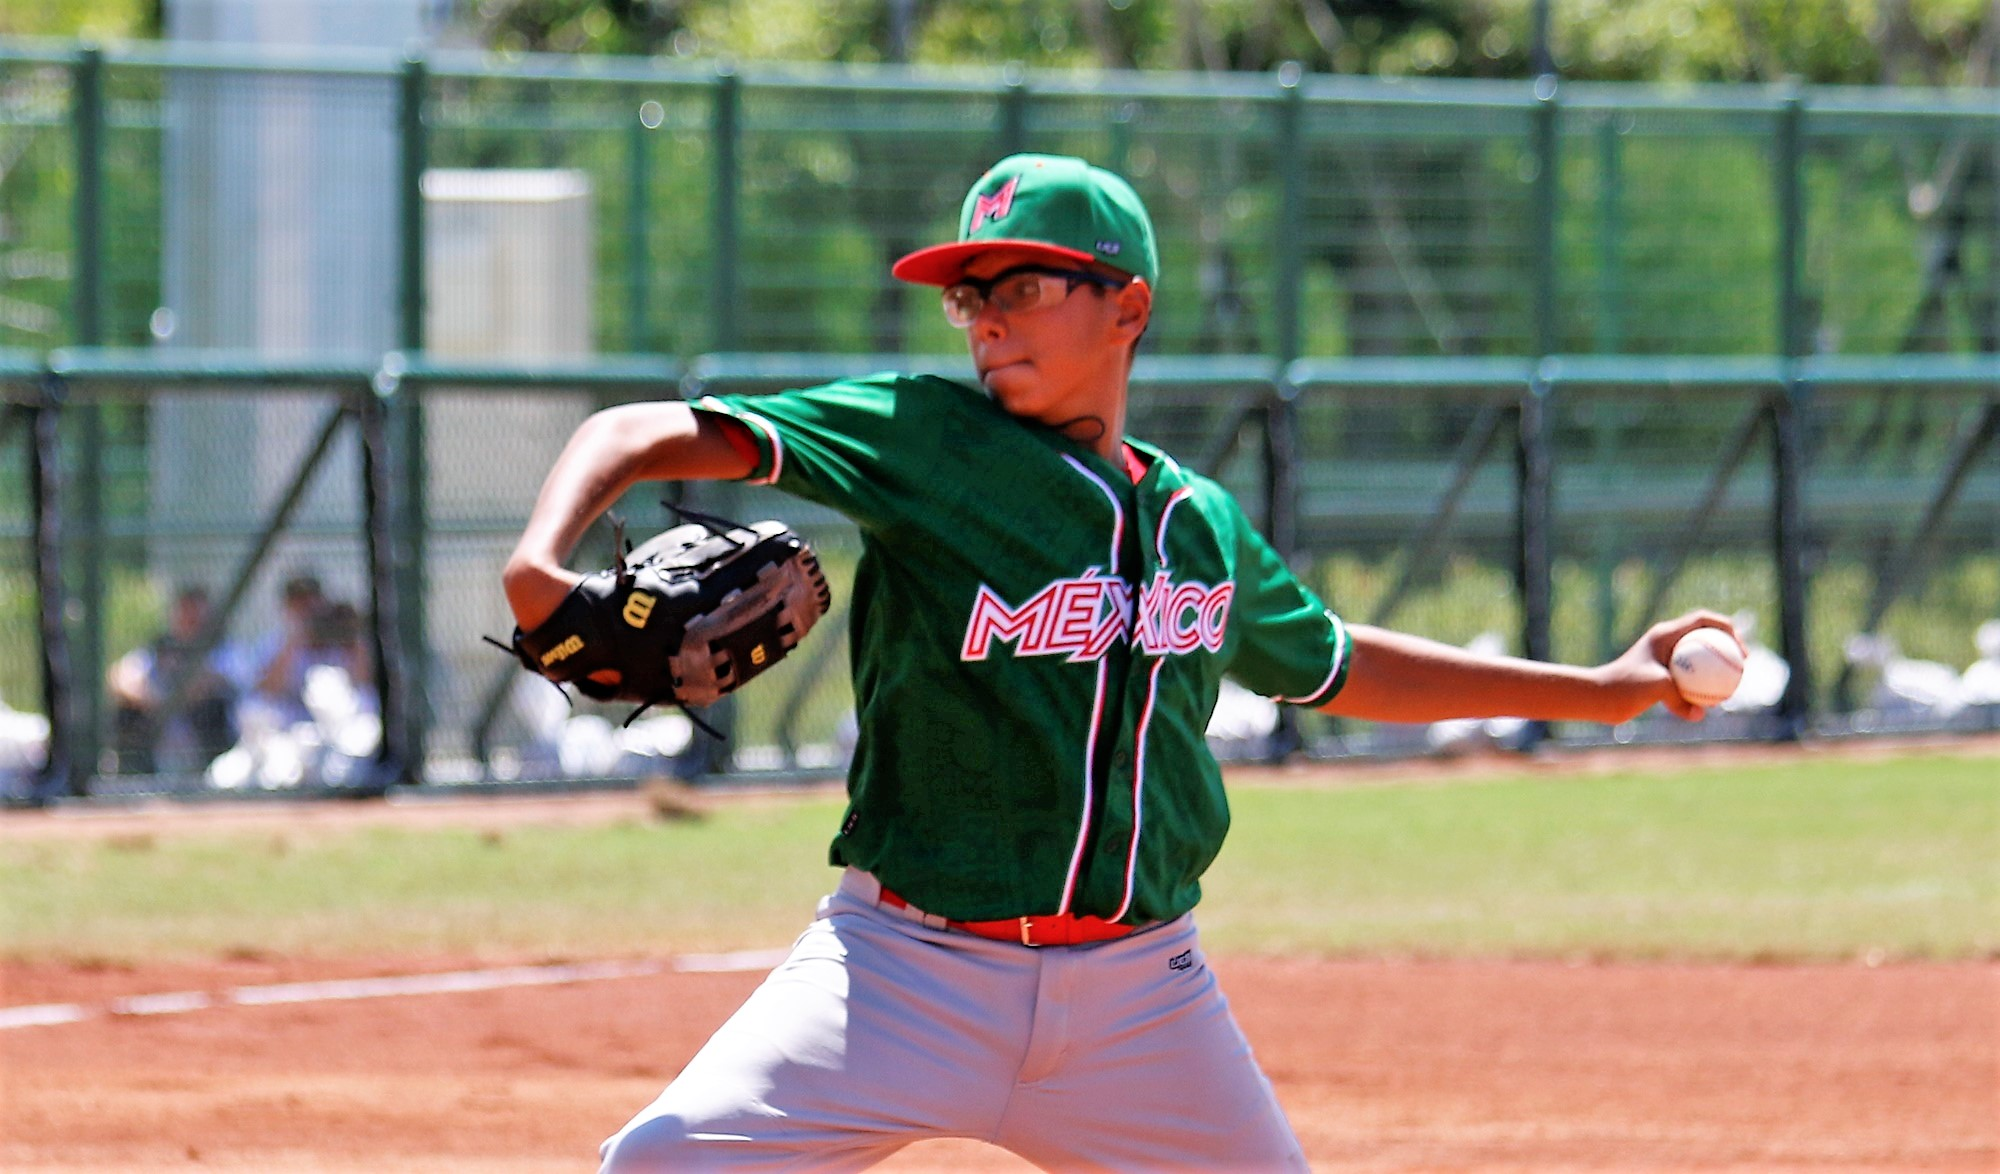 Mexico's left hander Javier Garcia struck out 5 in 3 innings